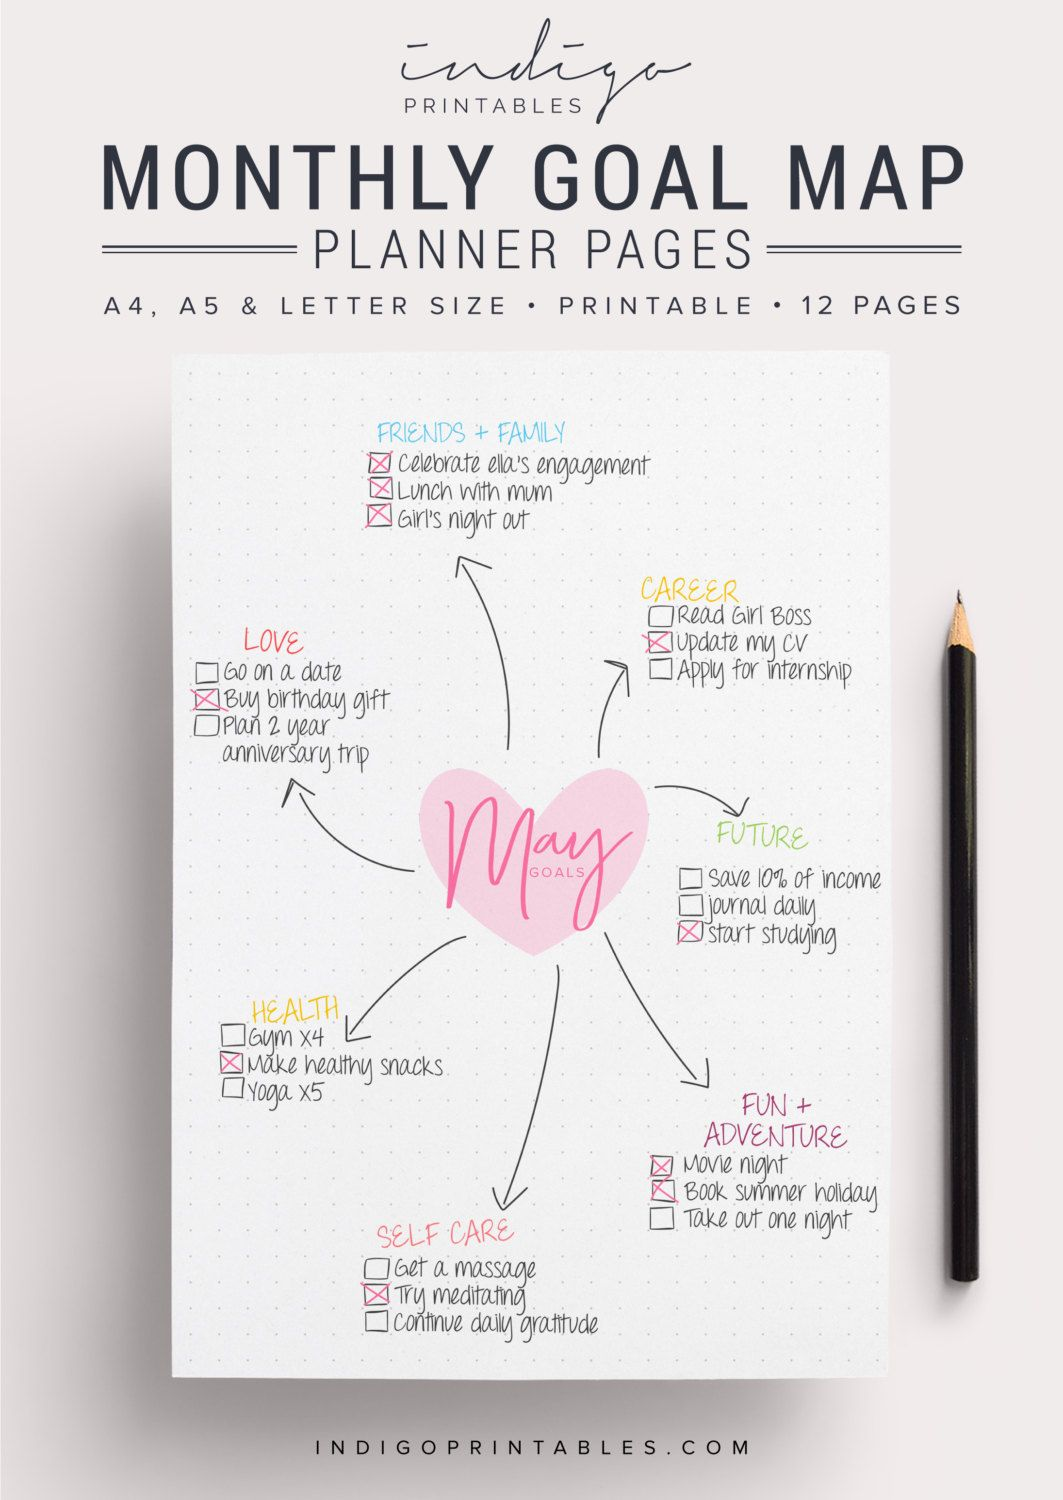 Blank goal planner pack 12 pages printable created by blank goal planner pack 12 pages printable created by indigoprintables your goal planner will help you map out your goals for the year ahead and keep malvernweather Image collections